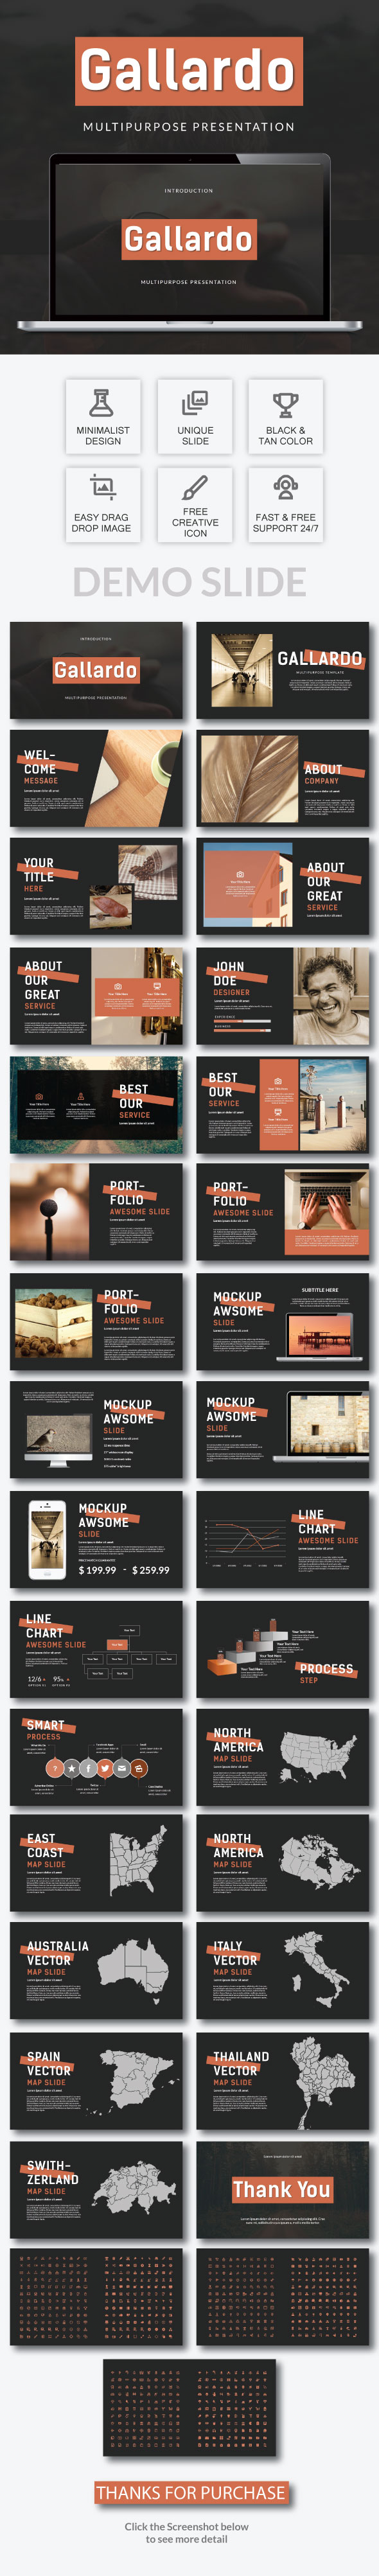 Gallardo - Multipurpose Presentation Template - PowerPoint Templates Presentation Templates